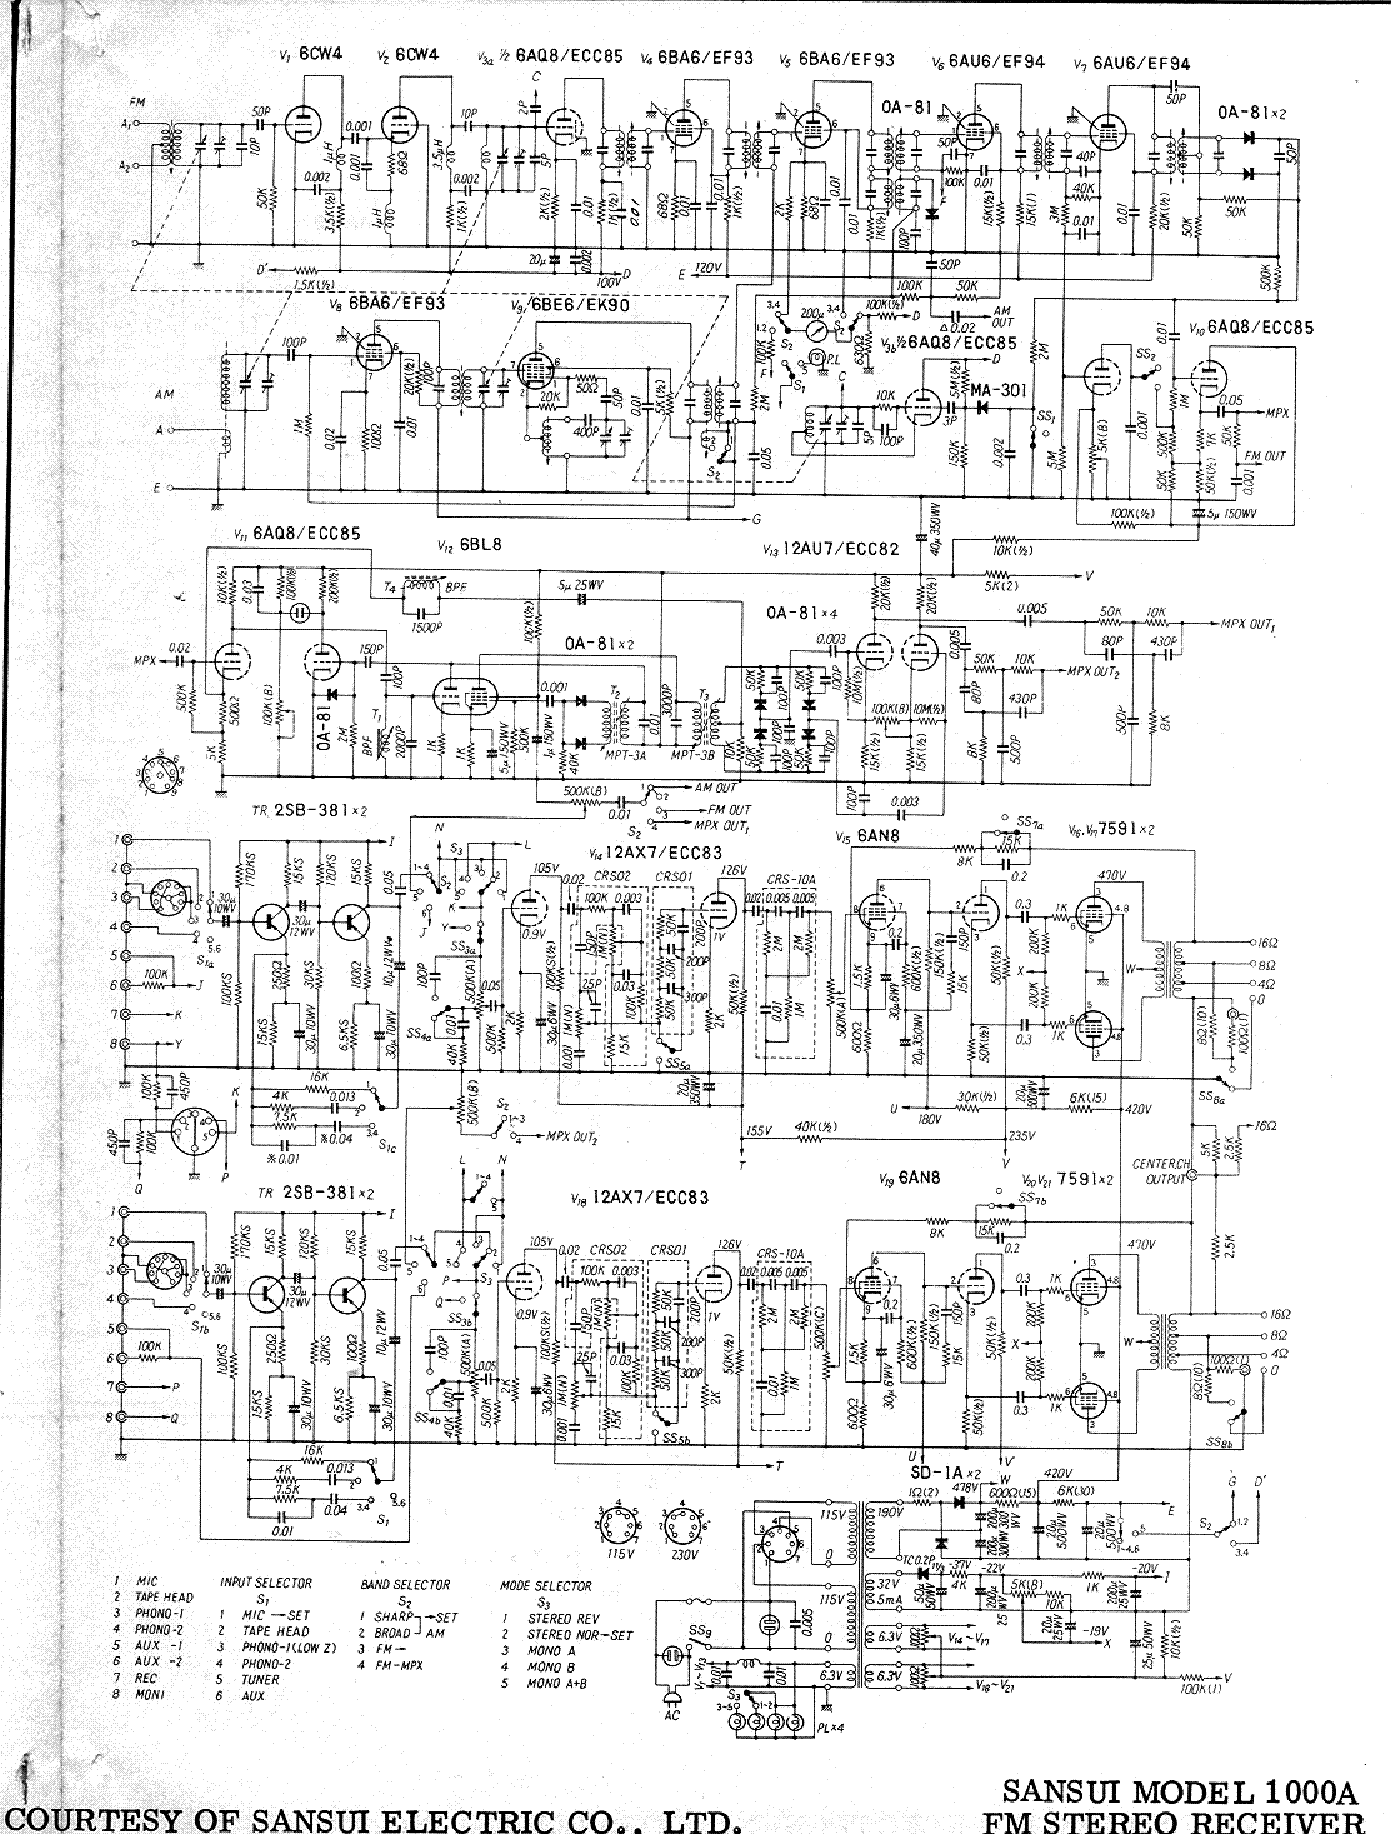 Sansui A Sch Service Manual Download Schematics